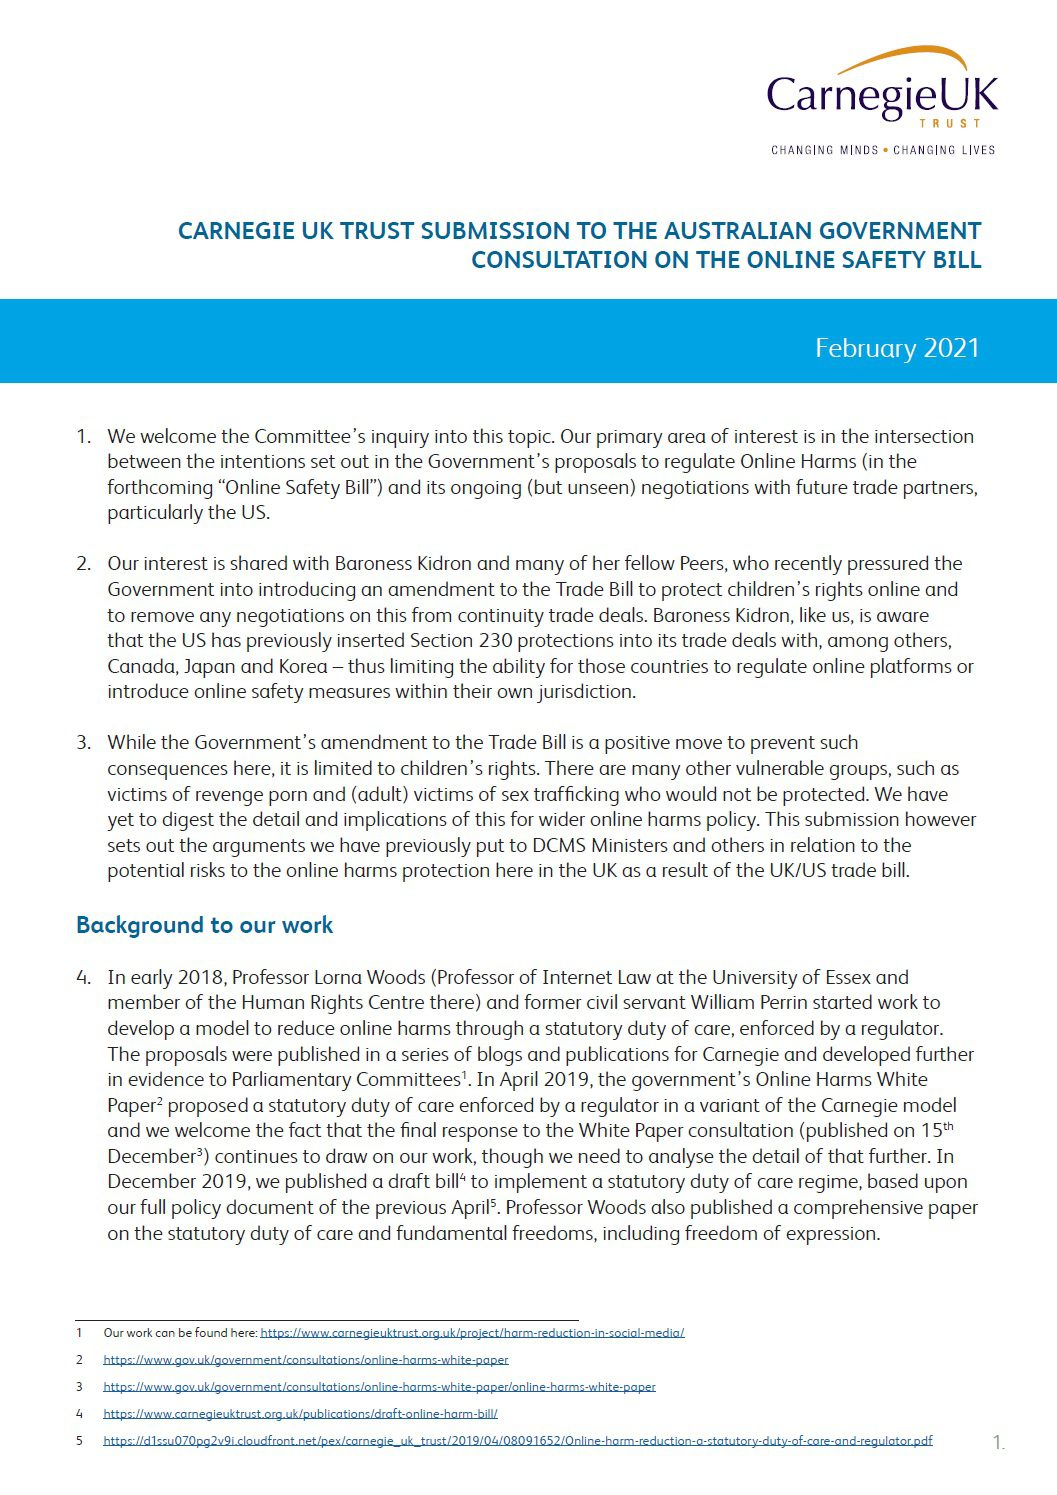 Submission to the Australian Government consultation on the Online Safety Bill